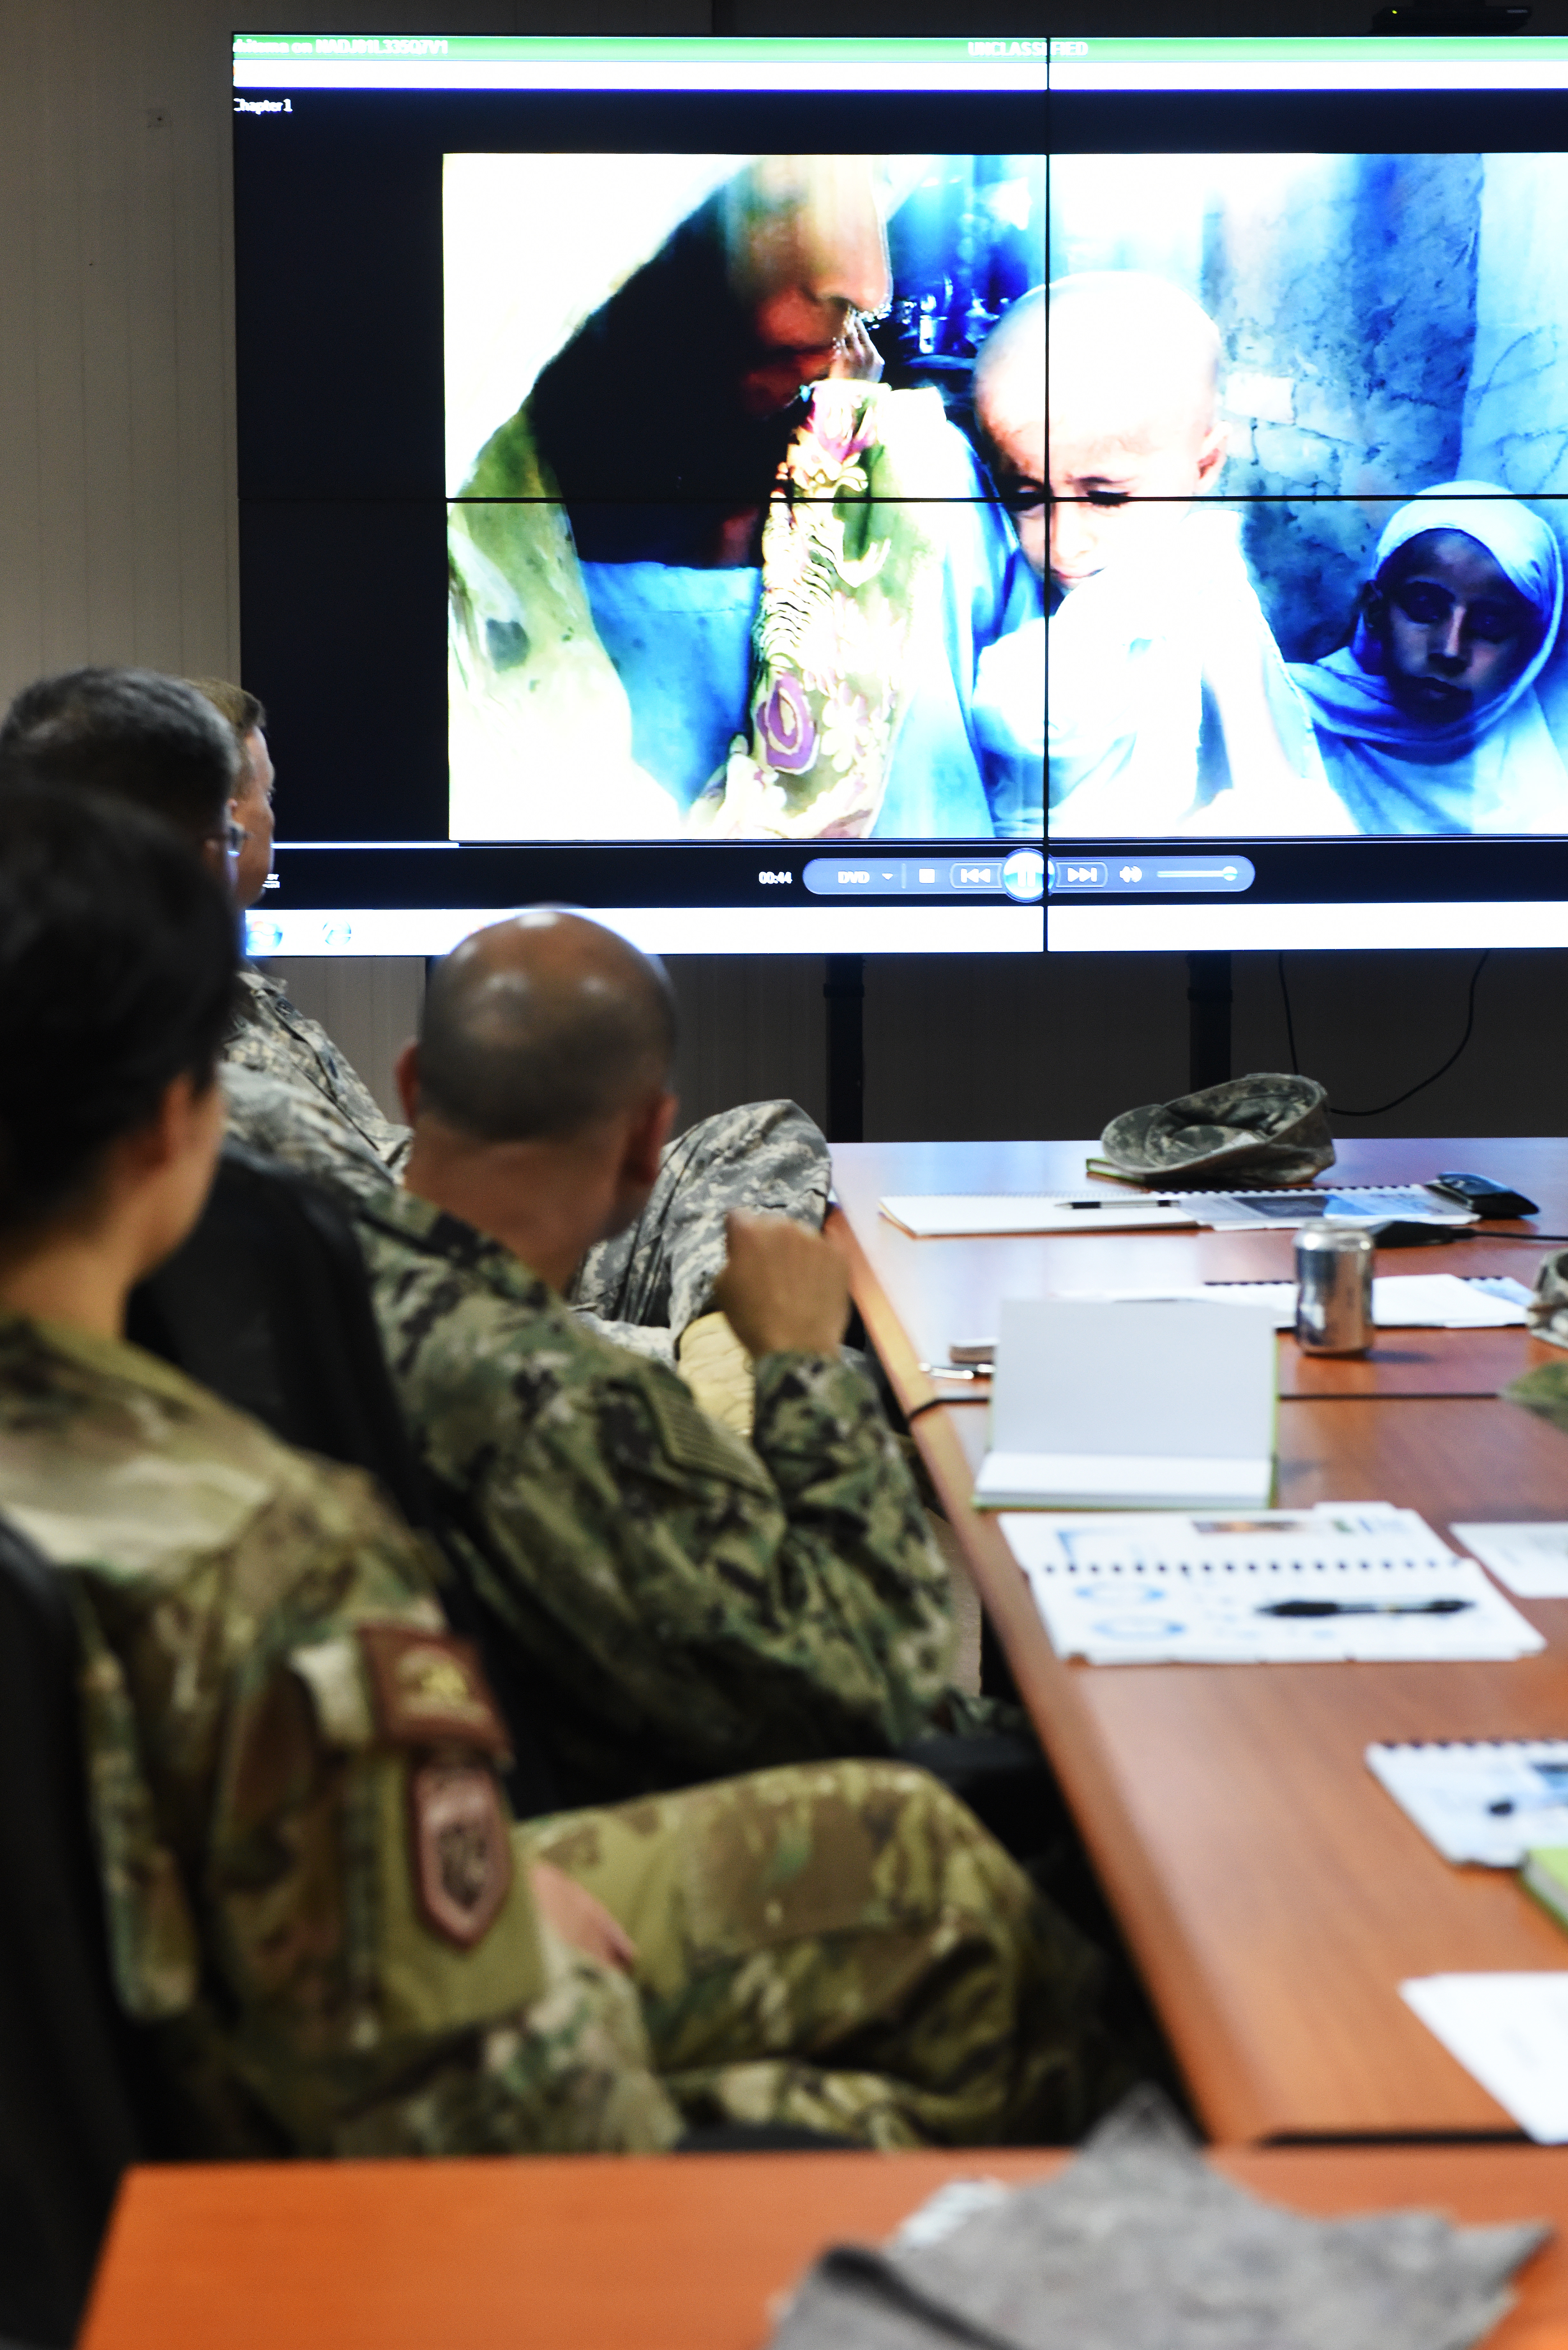 Combined Joint Task Force-Horn of Africa service members assigned to Camp Lemonnier watch a USAID's Office of U.S. Foreign Disaster Assistance introductory video during a joint humanitarian operations course June 1, 2015.  The JHOC course attendees learned about mutual coordination and cooperation between the U.S. Government civilian agencies and the U.S. military, including best practices and lessons learned.  (U.S. Air Force photo by Staff Sgt. Maria Bowman)